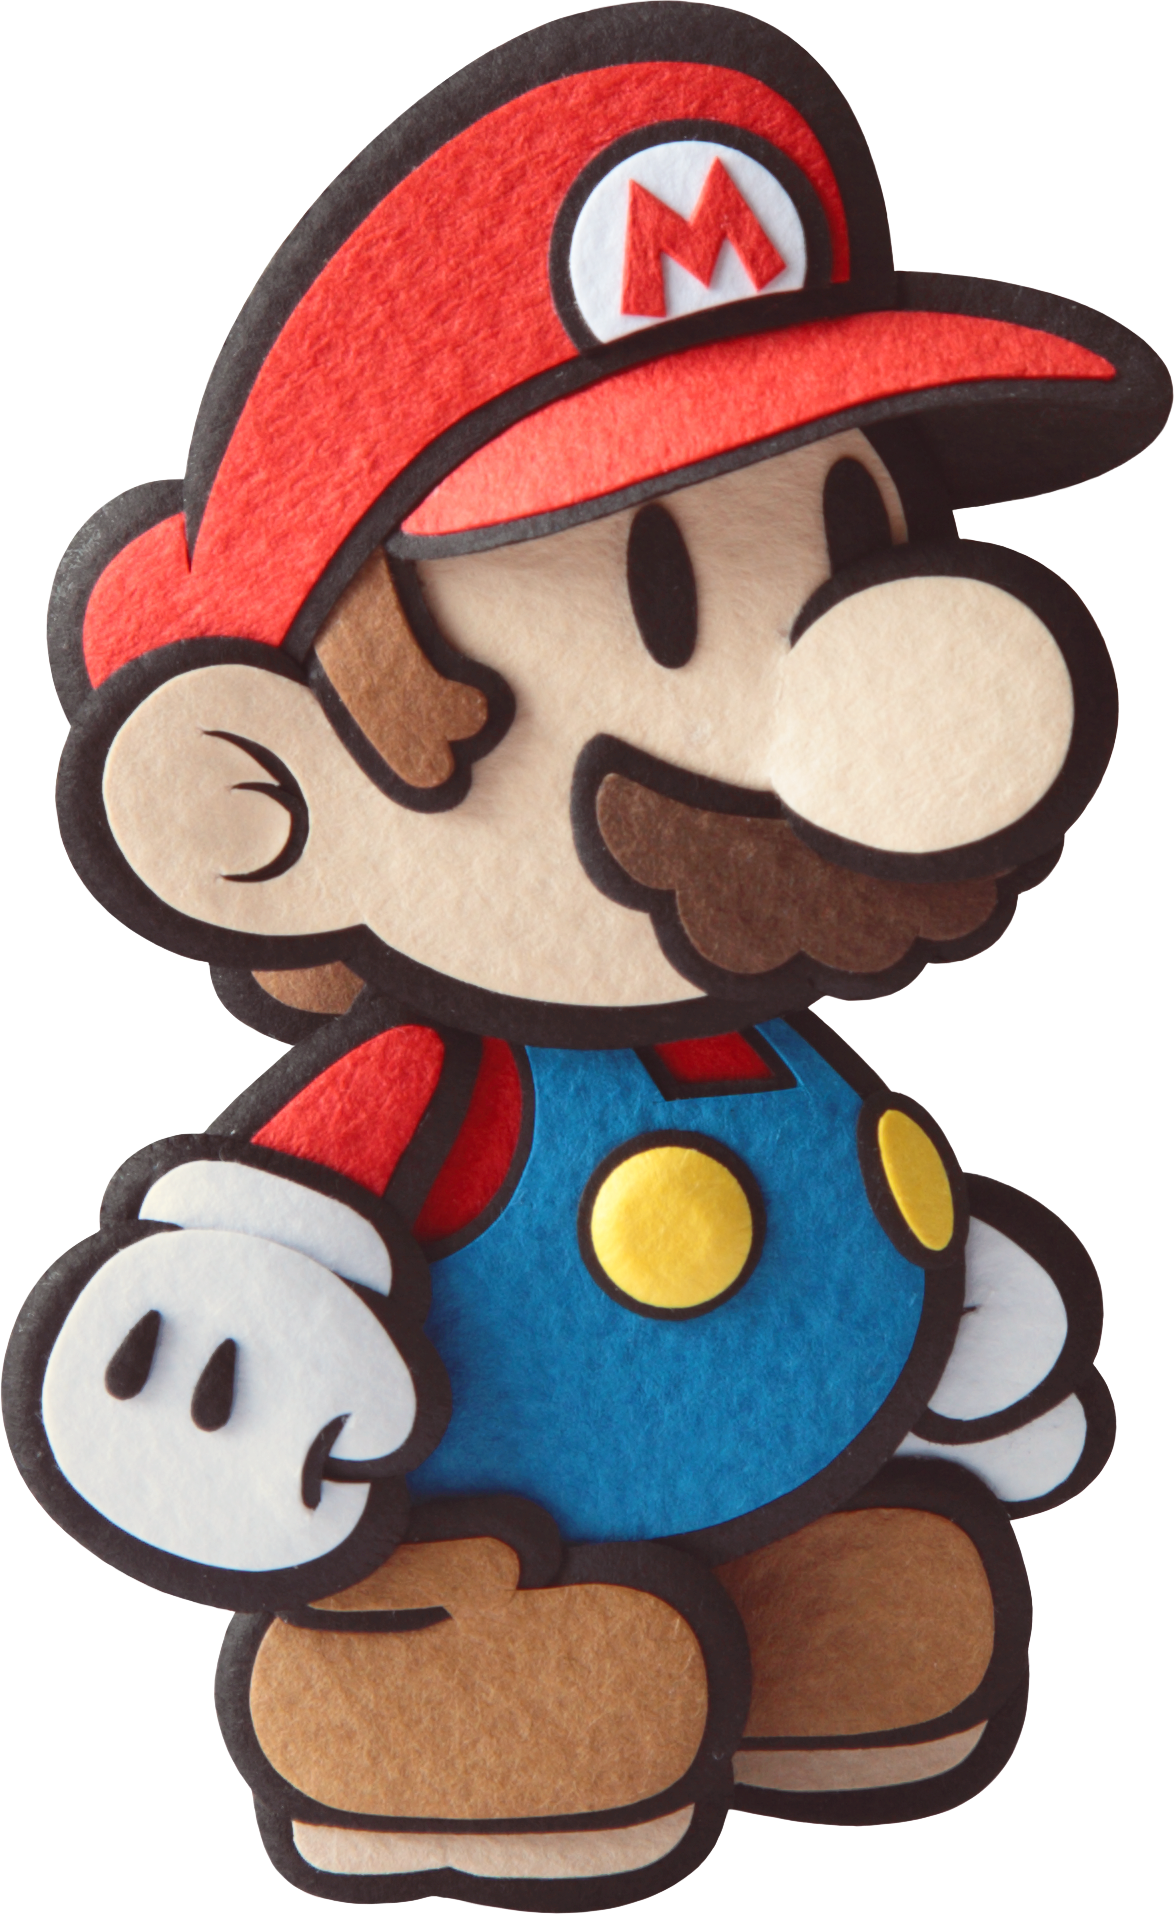 Paper mario coloring pages to print - Paper Mario Free Coloring Pages On Art